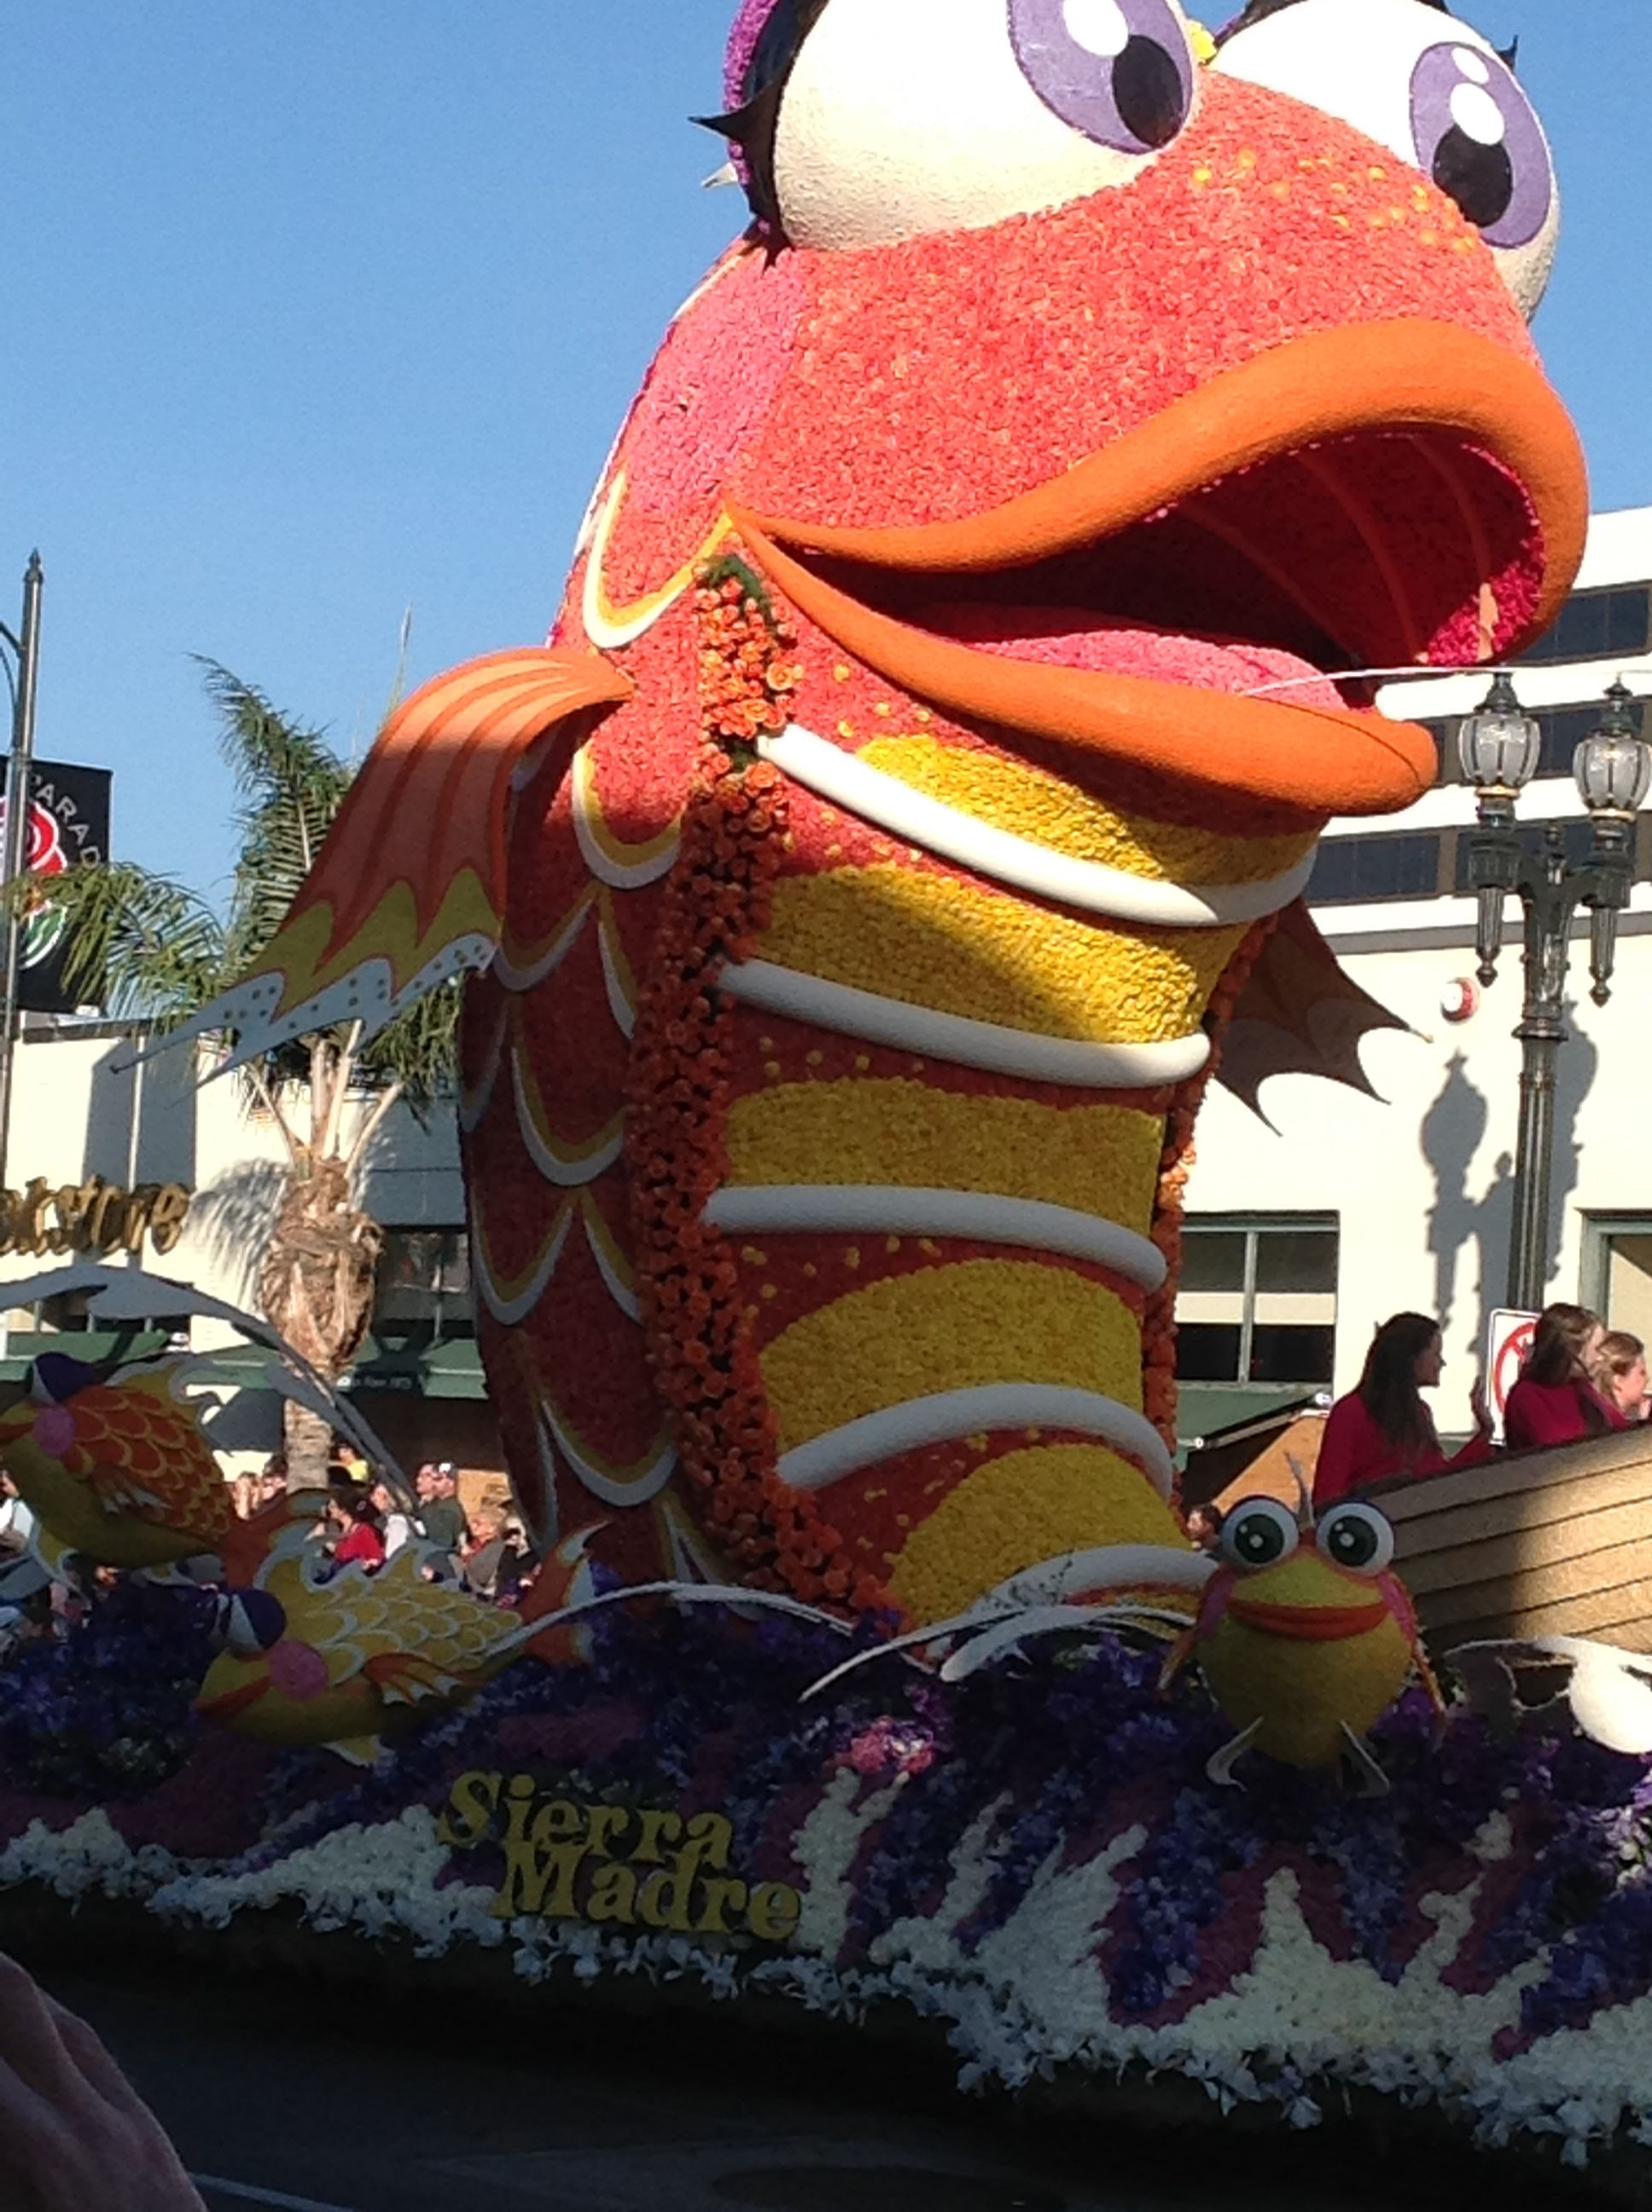 Already Have An Account Log In Now - Rose bowl parade floats already have an account log in now